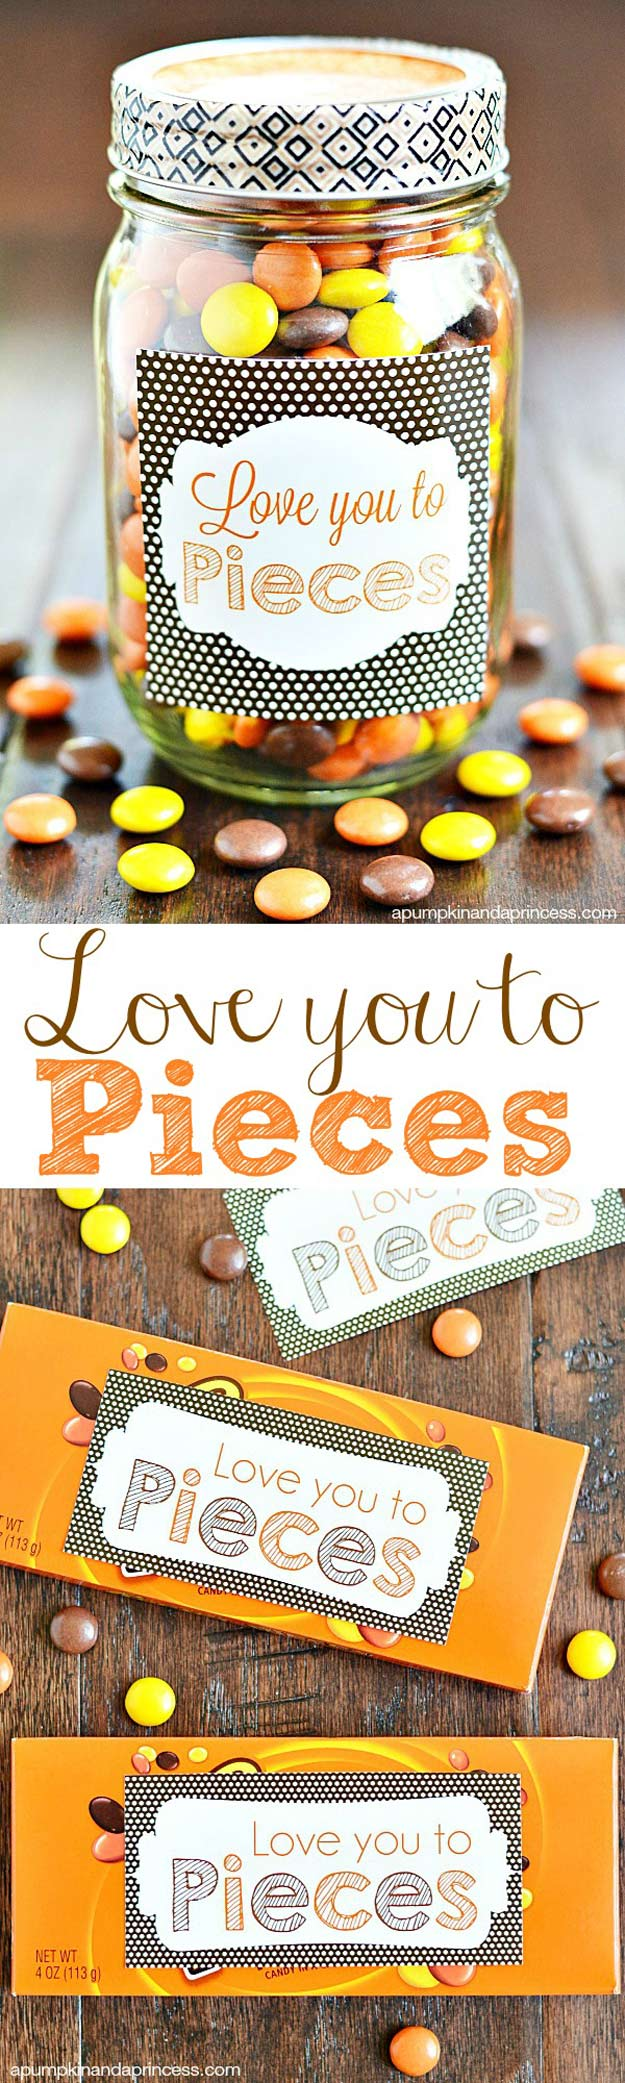 Mason Jar Valentine Gifts and Crafts   DIY Ideas for Valentines Day for Cute Gift Giving and Decor   Love you to Pieces Sweets Jar   #valentines